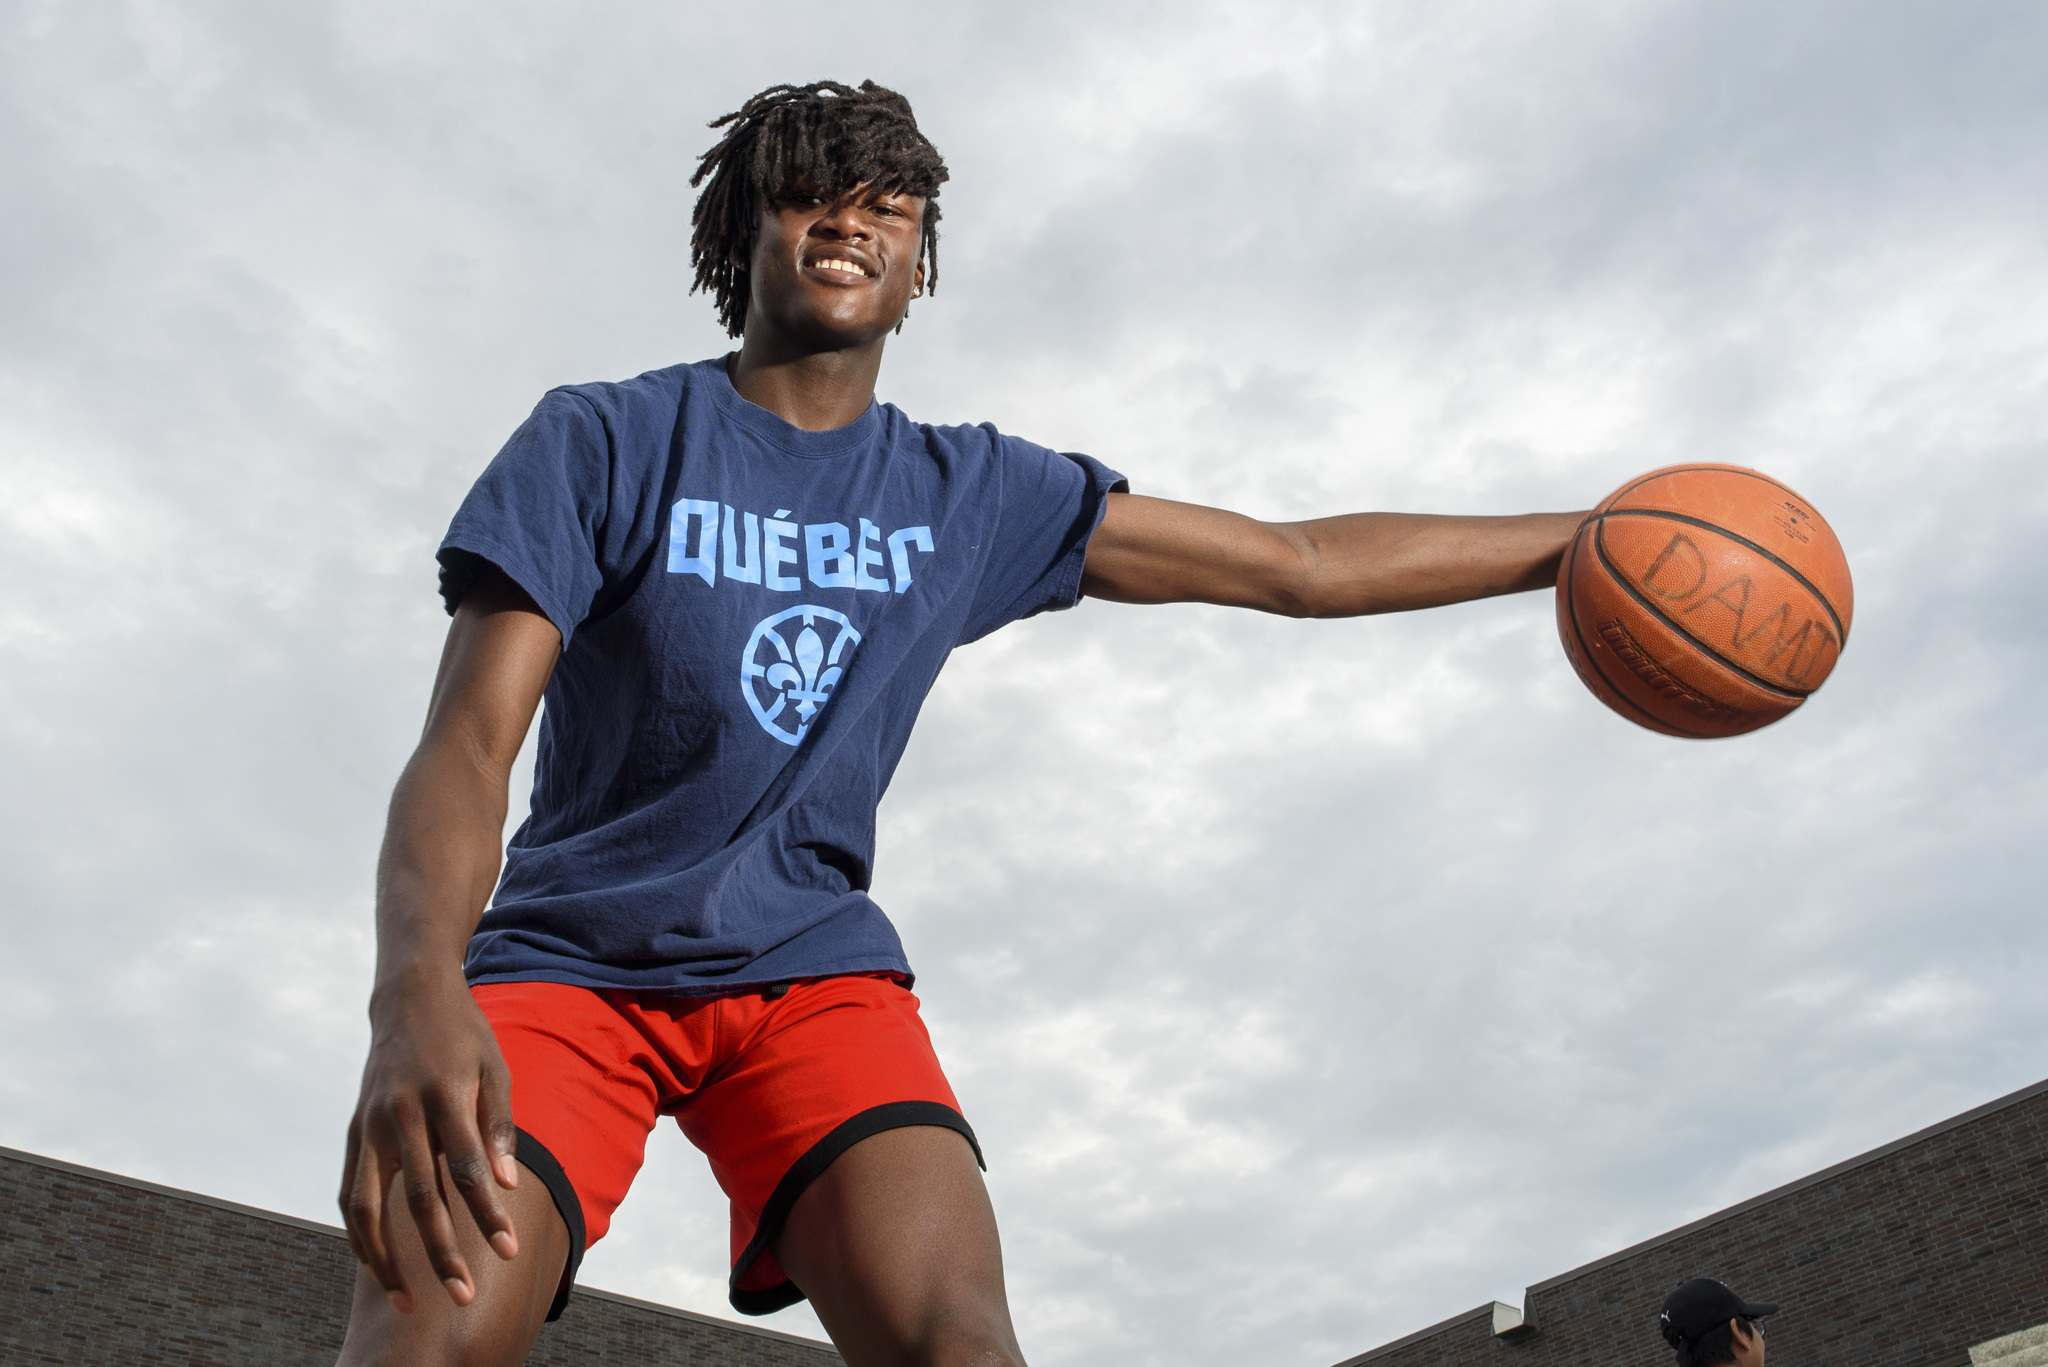 Dami Farinloye planned on playing in the  Ontario Scholastic Basketball Association and suiting up for Orangeville Prep in hopes of showcasing his skills in front of NCAA Division I scouts. (Jesse Boily / Winnipeg Free Press)